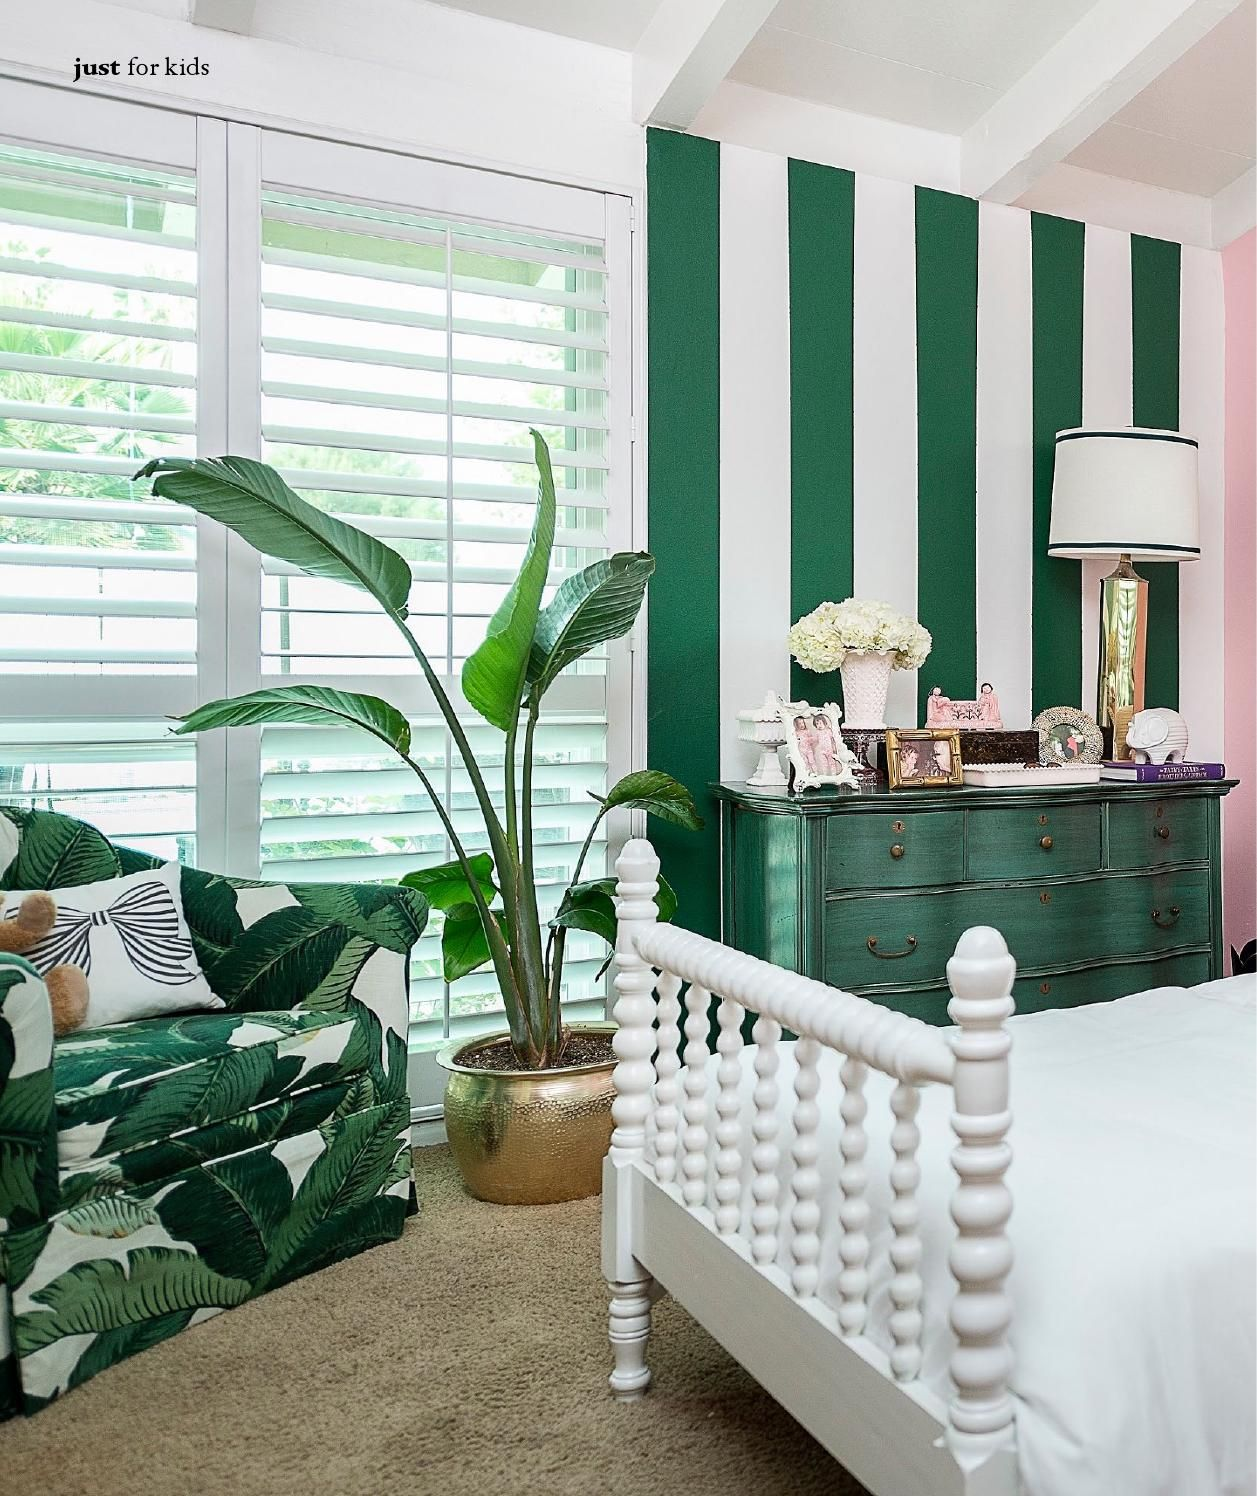 hotel style inspiration - beverly hills hotel | decorating